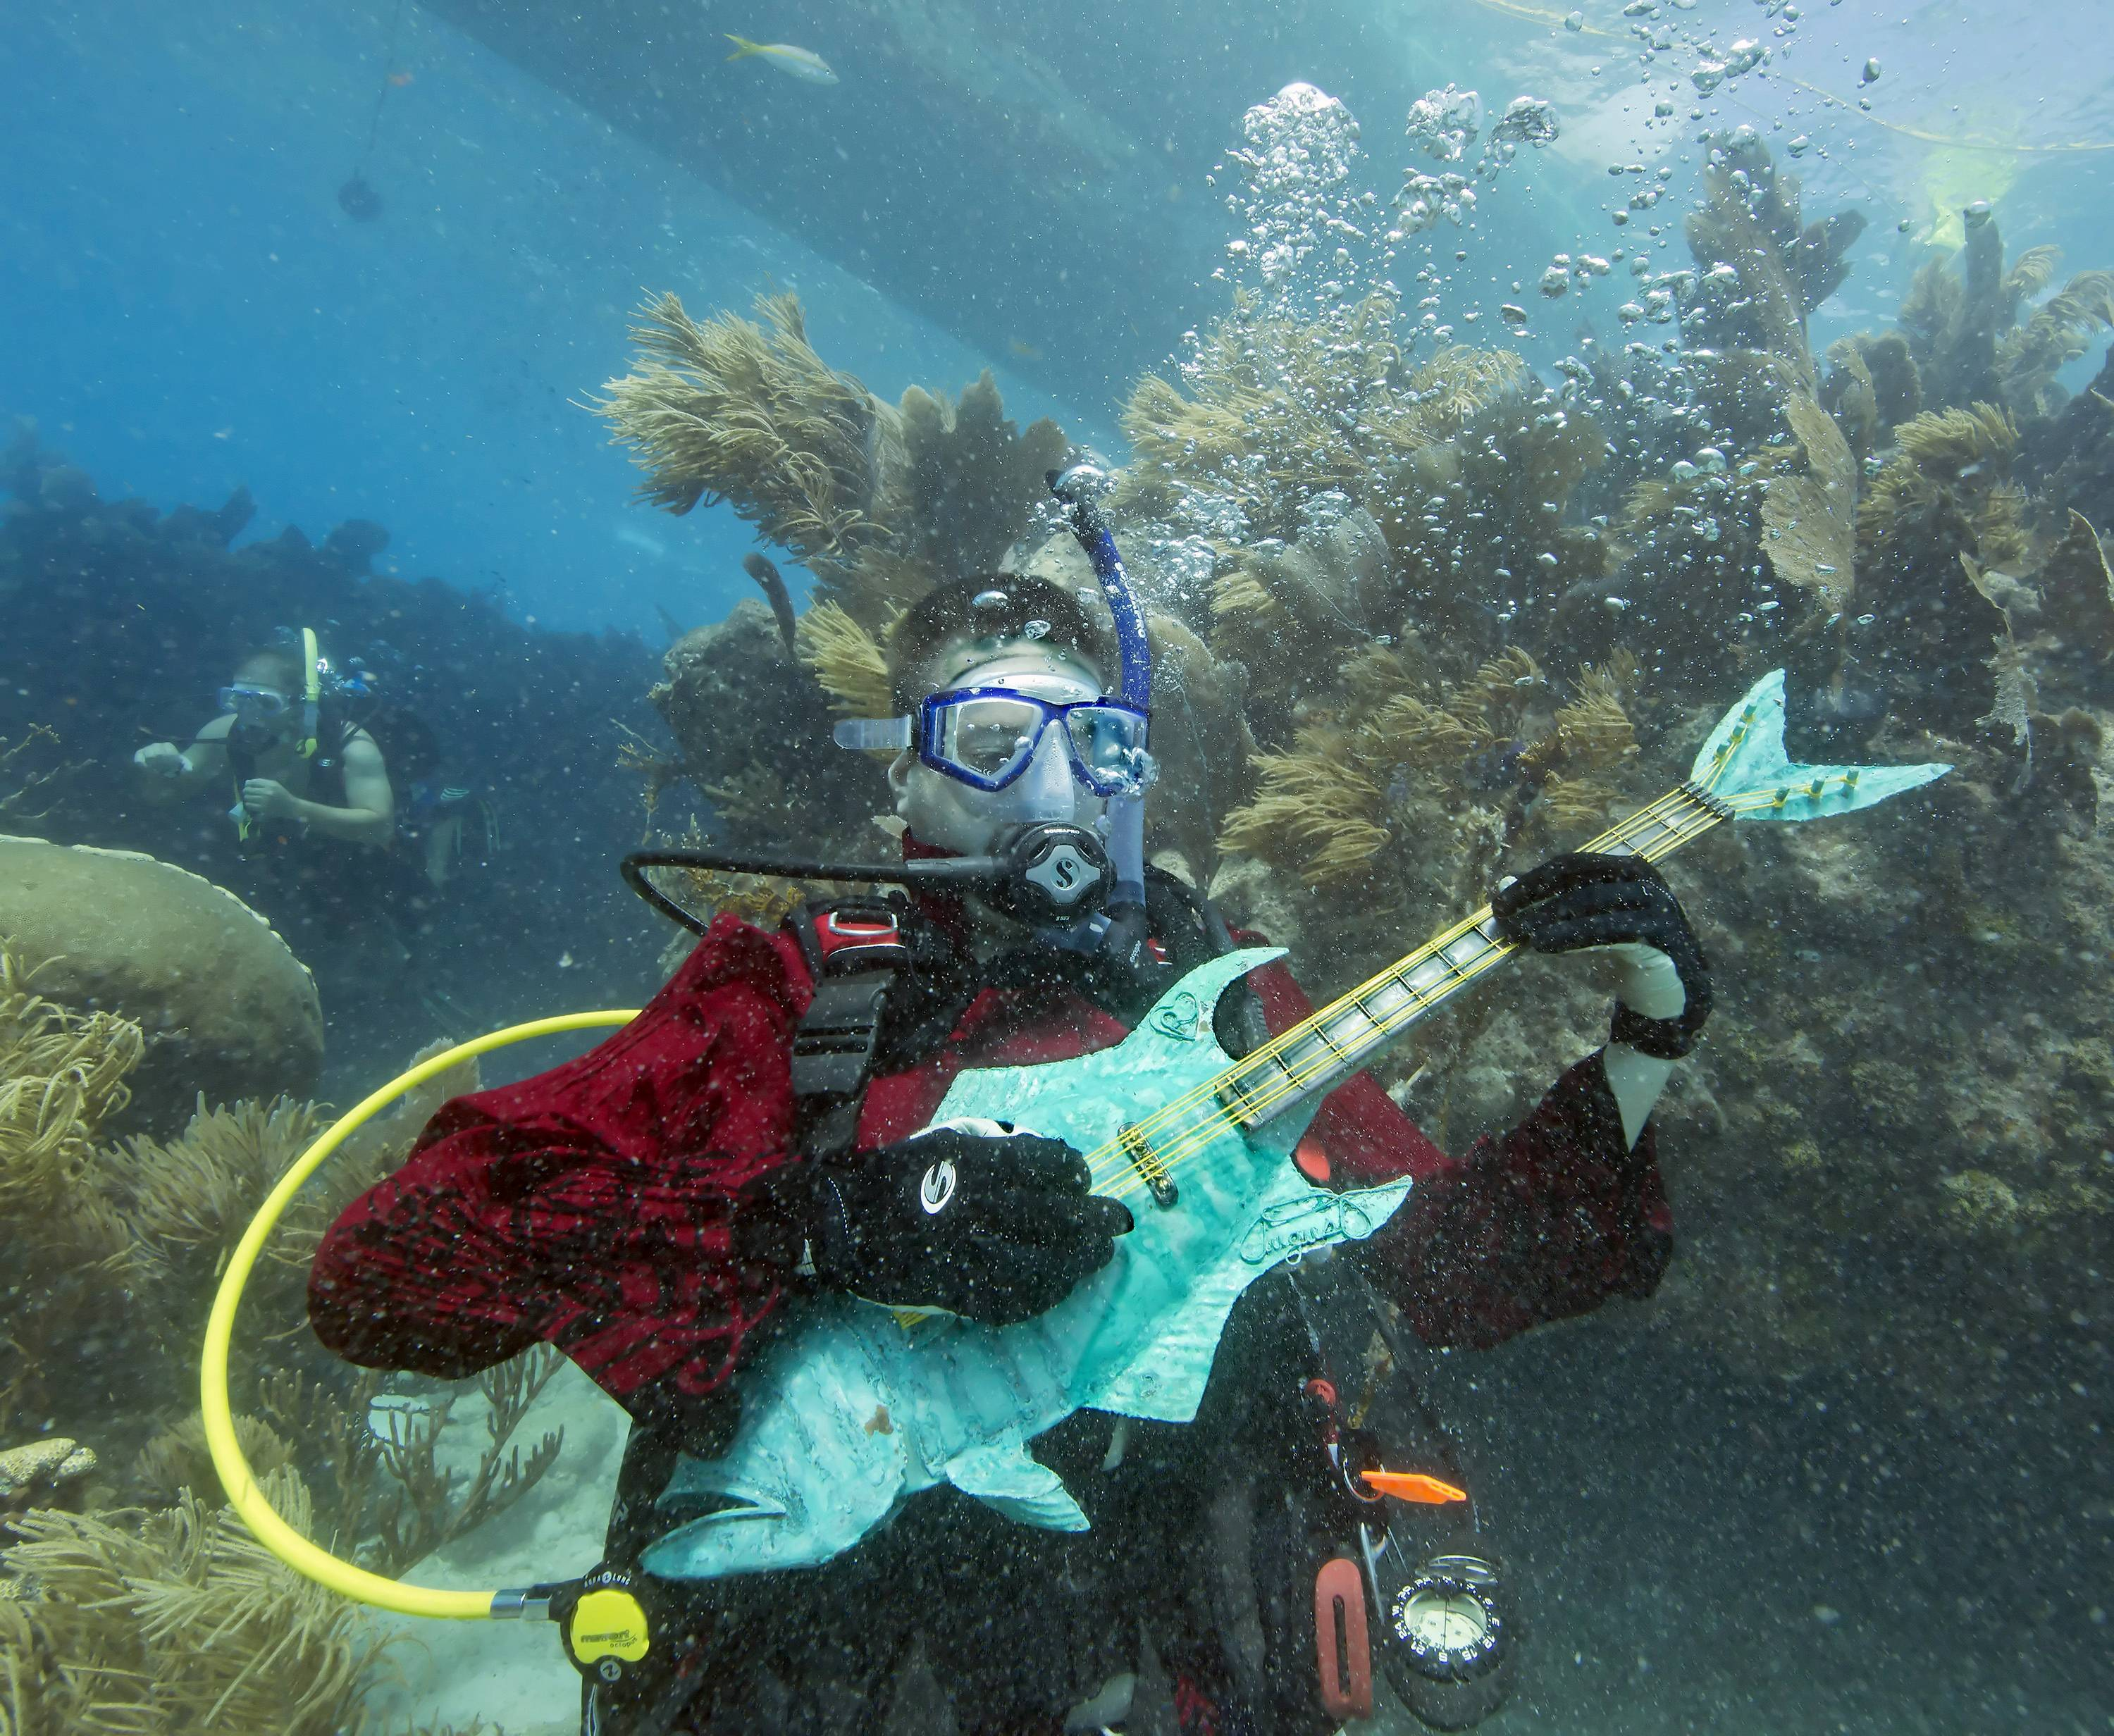 Mike Limerick pretends to play a mock musical instrument Saturday at the Lower Keys Underwater Music Festival, in the Florida Keys National Marine Sanctuary. The subsea concert at Looe Key Reef, about six miles south of Big Pine Key, Fla., attracted almost 500 divers and snorkelers to listen to a local radio station's four-hour broadcast piped beneath the sea via underwater speakers.